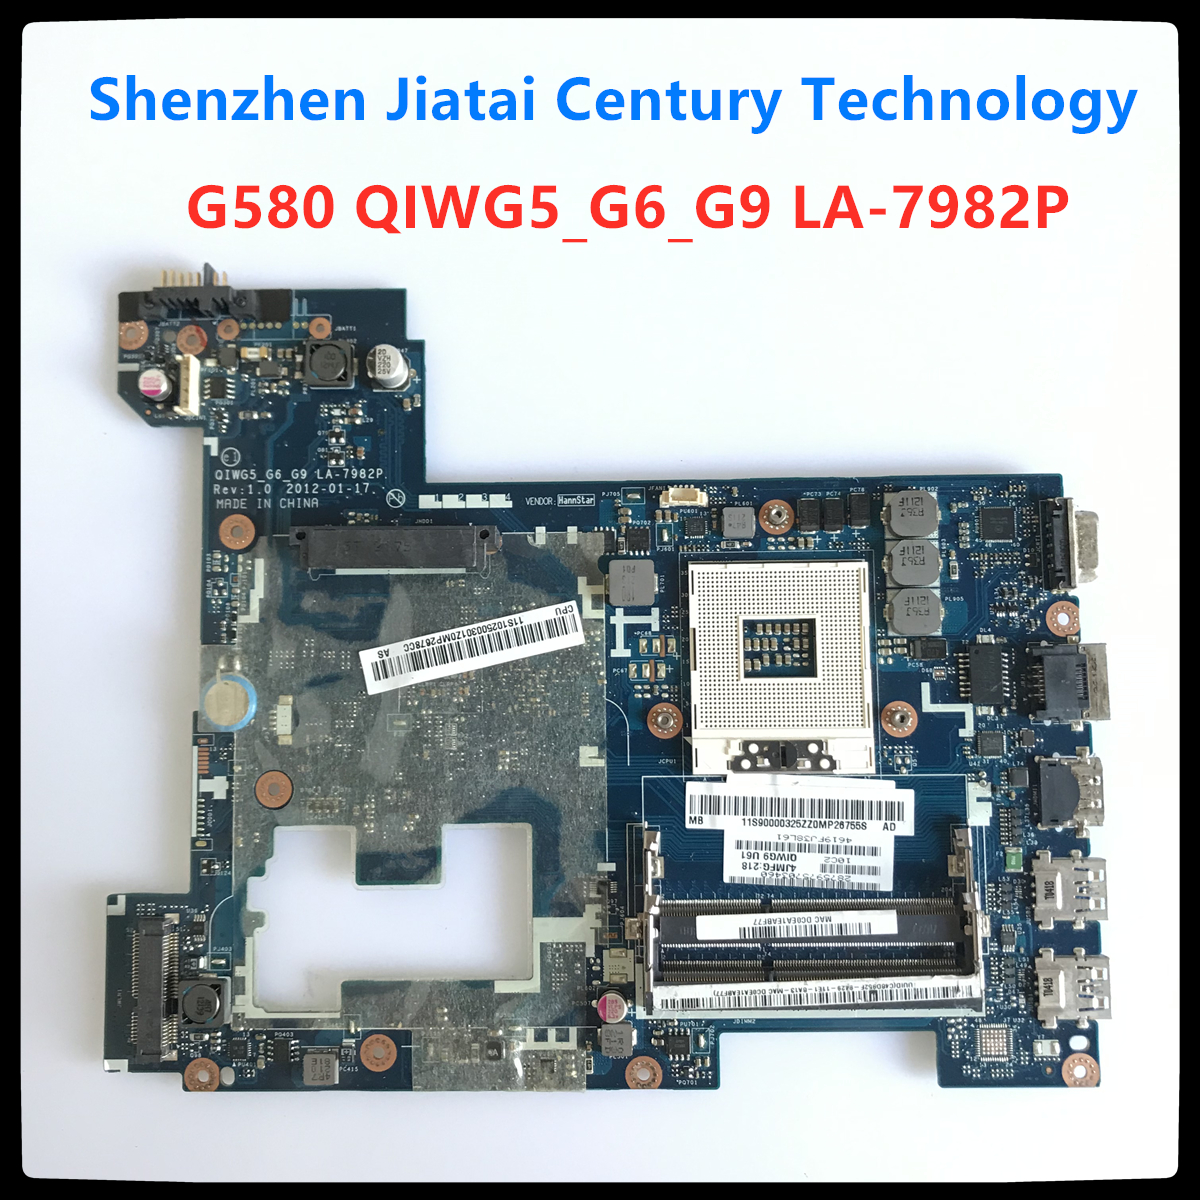 Free Shipping QIWG5_G6_G9 LA-7982P LAPTOP MOTHERBOARD FIT FOR LENOVO G580 P580 NOTEBOOK MAINBOARD High Quality Tested 100% Work